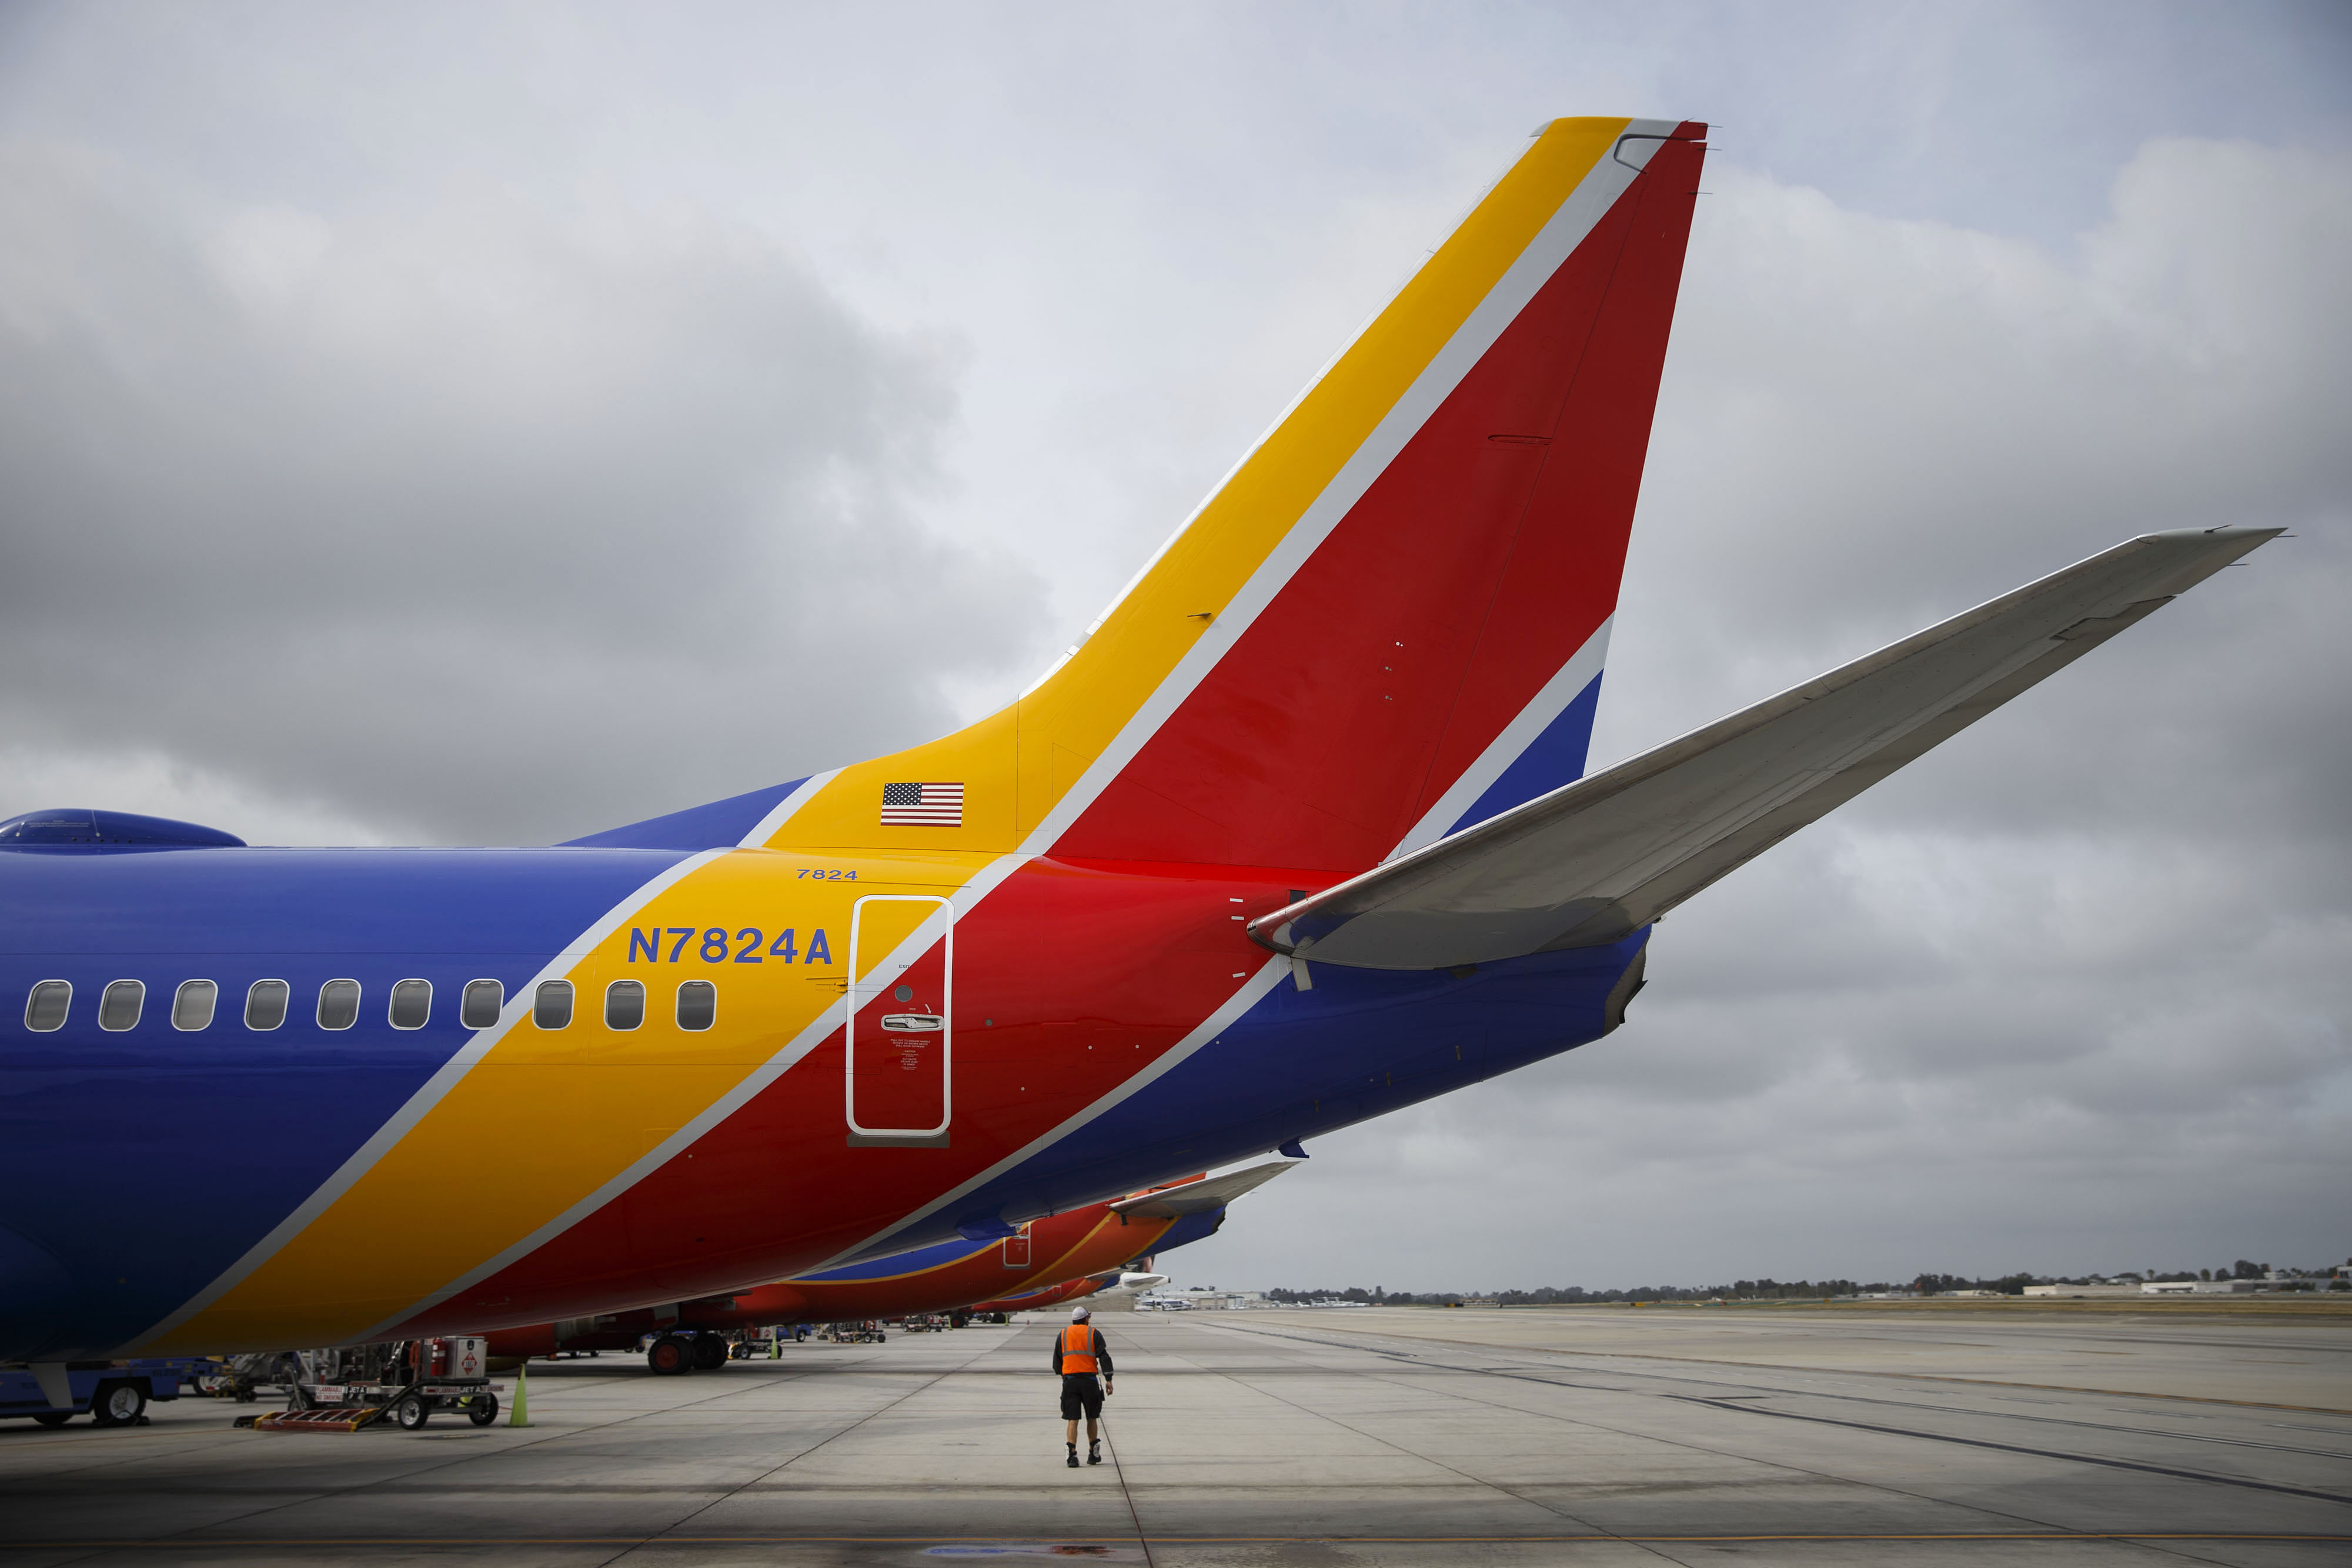 A Southwest Airlines Co. employee walks underneath the tail of a Boeing Co. 737 aircraft on the tarmac at John Wayne Airport (SNA) in Santa Ana, California, on April 14, 2016.